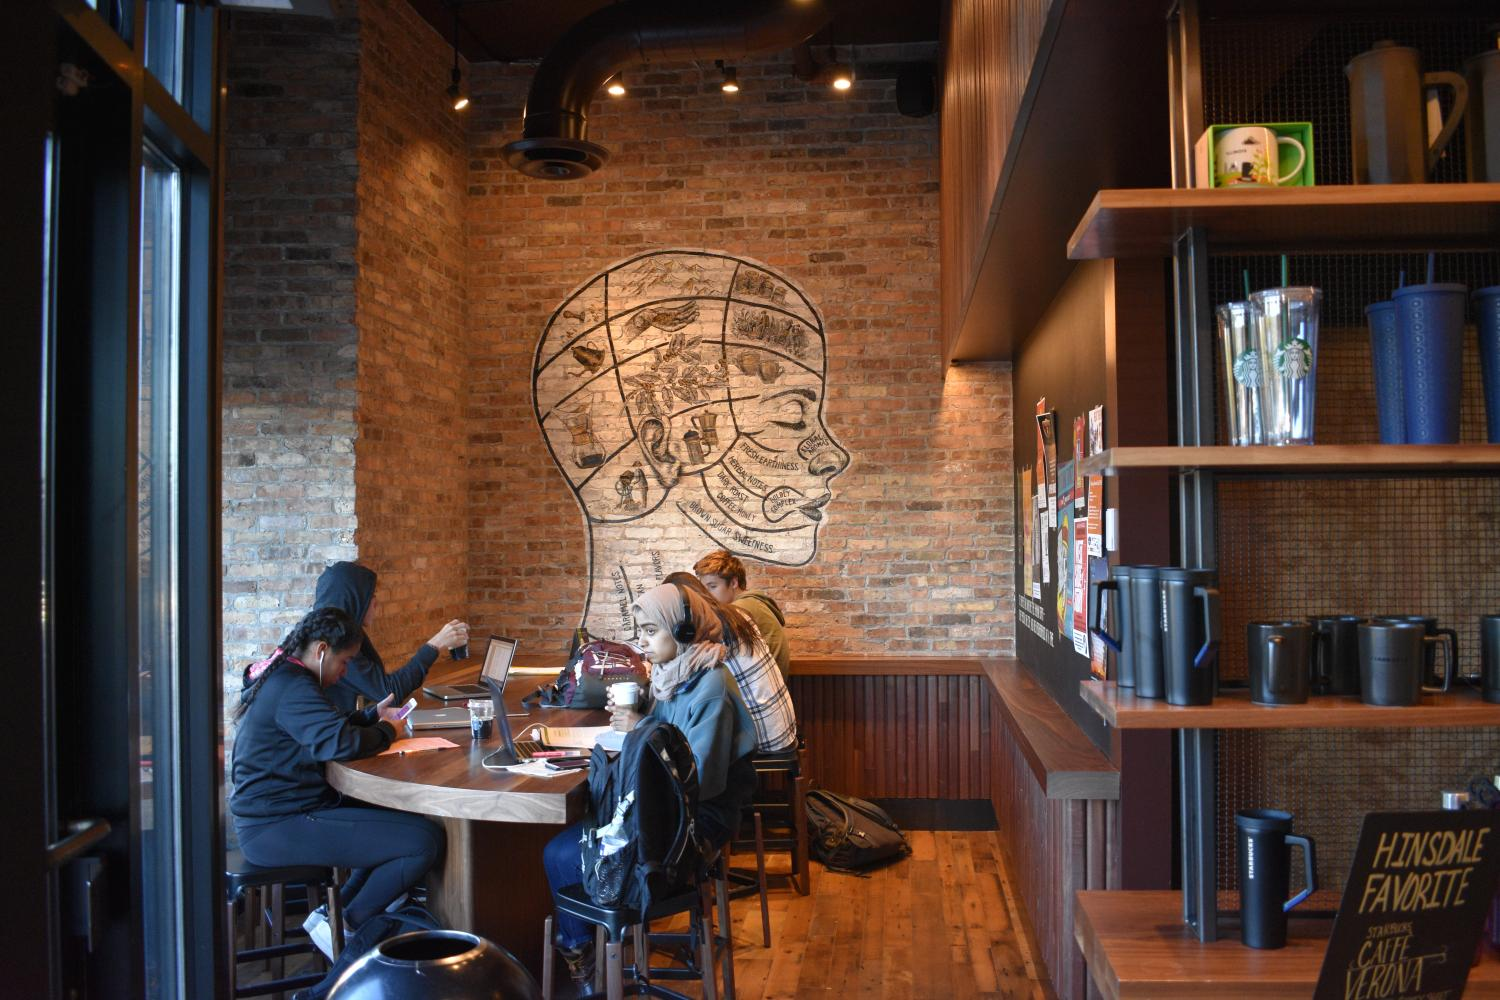 The renovation gives the new Starbuck's a calm and trendy atmosphere that is perfect for after school study sessions.